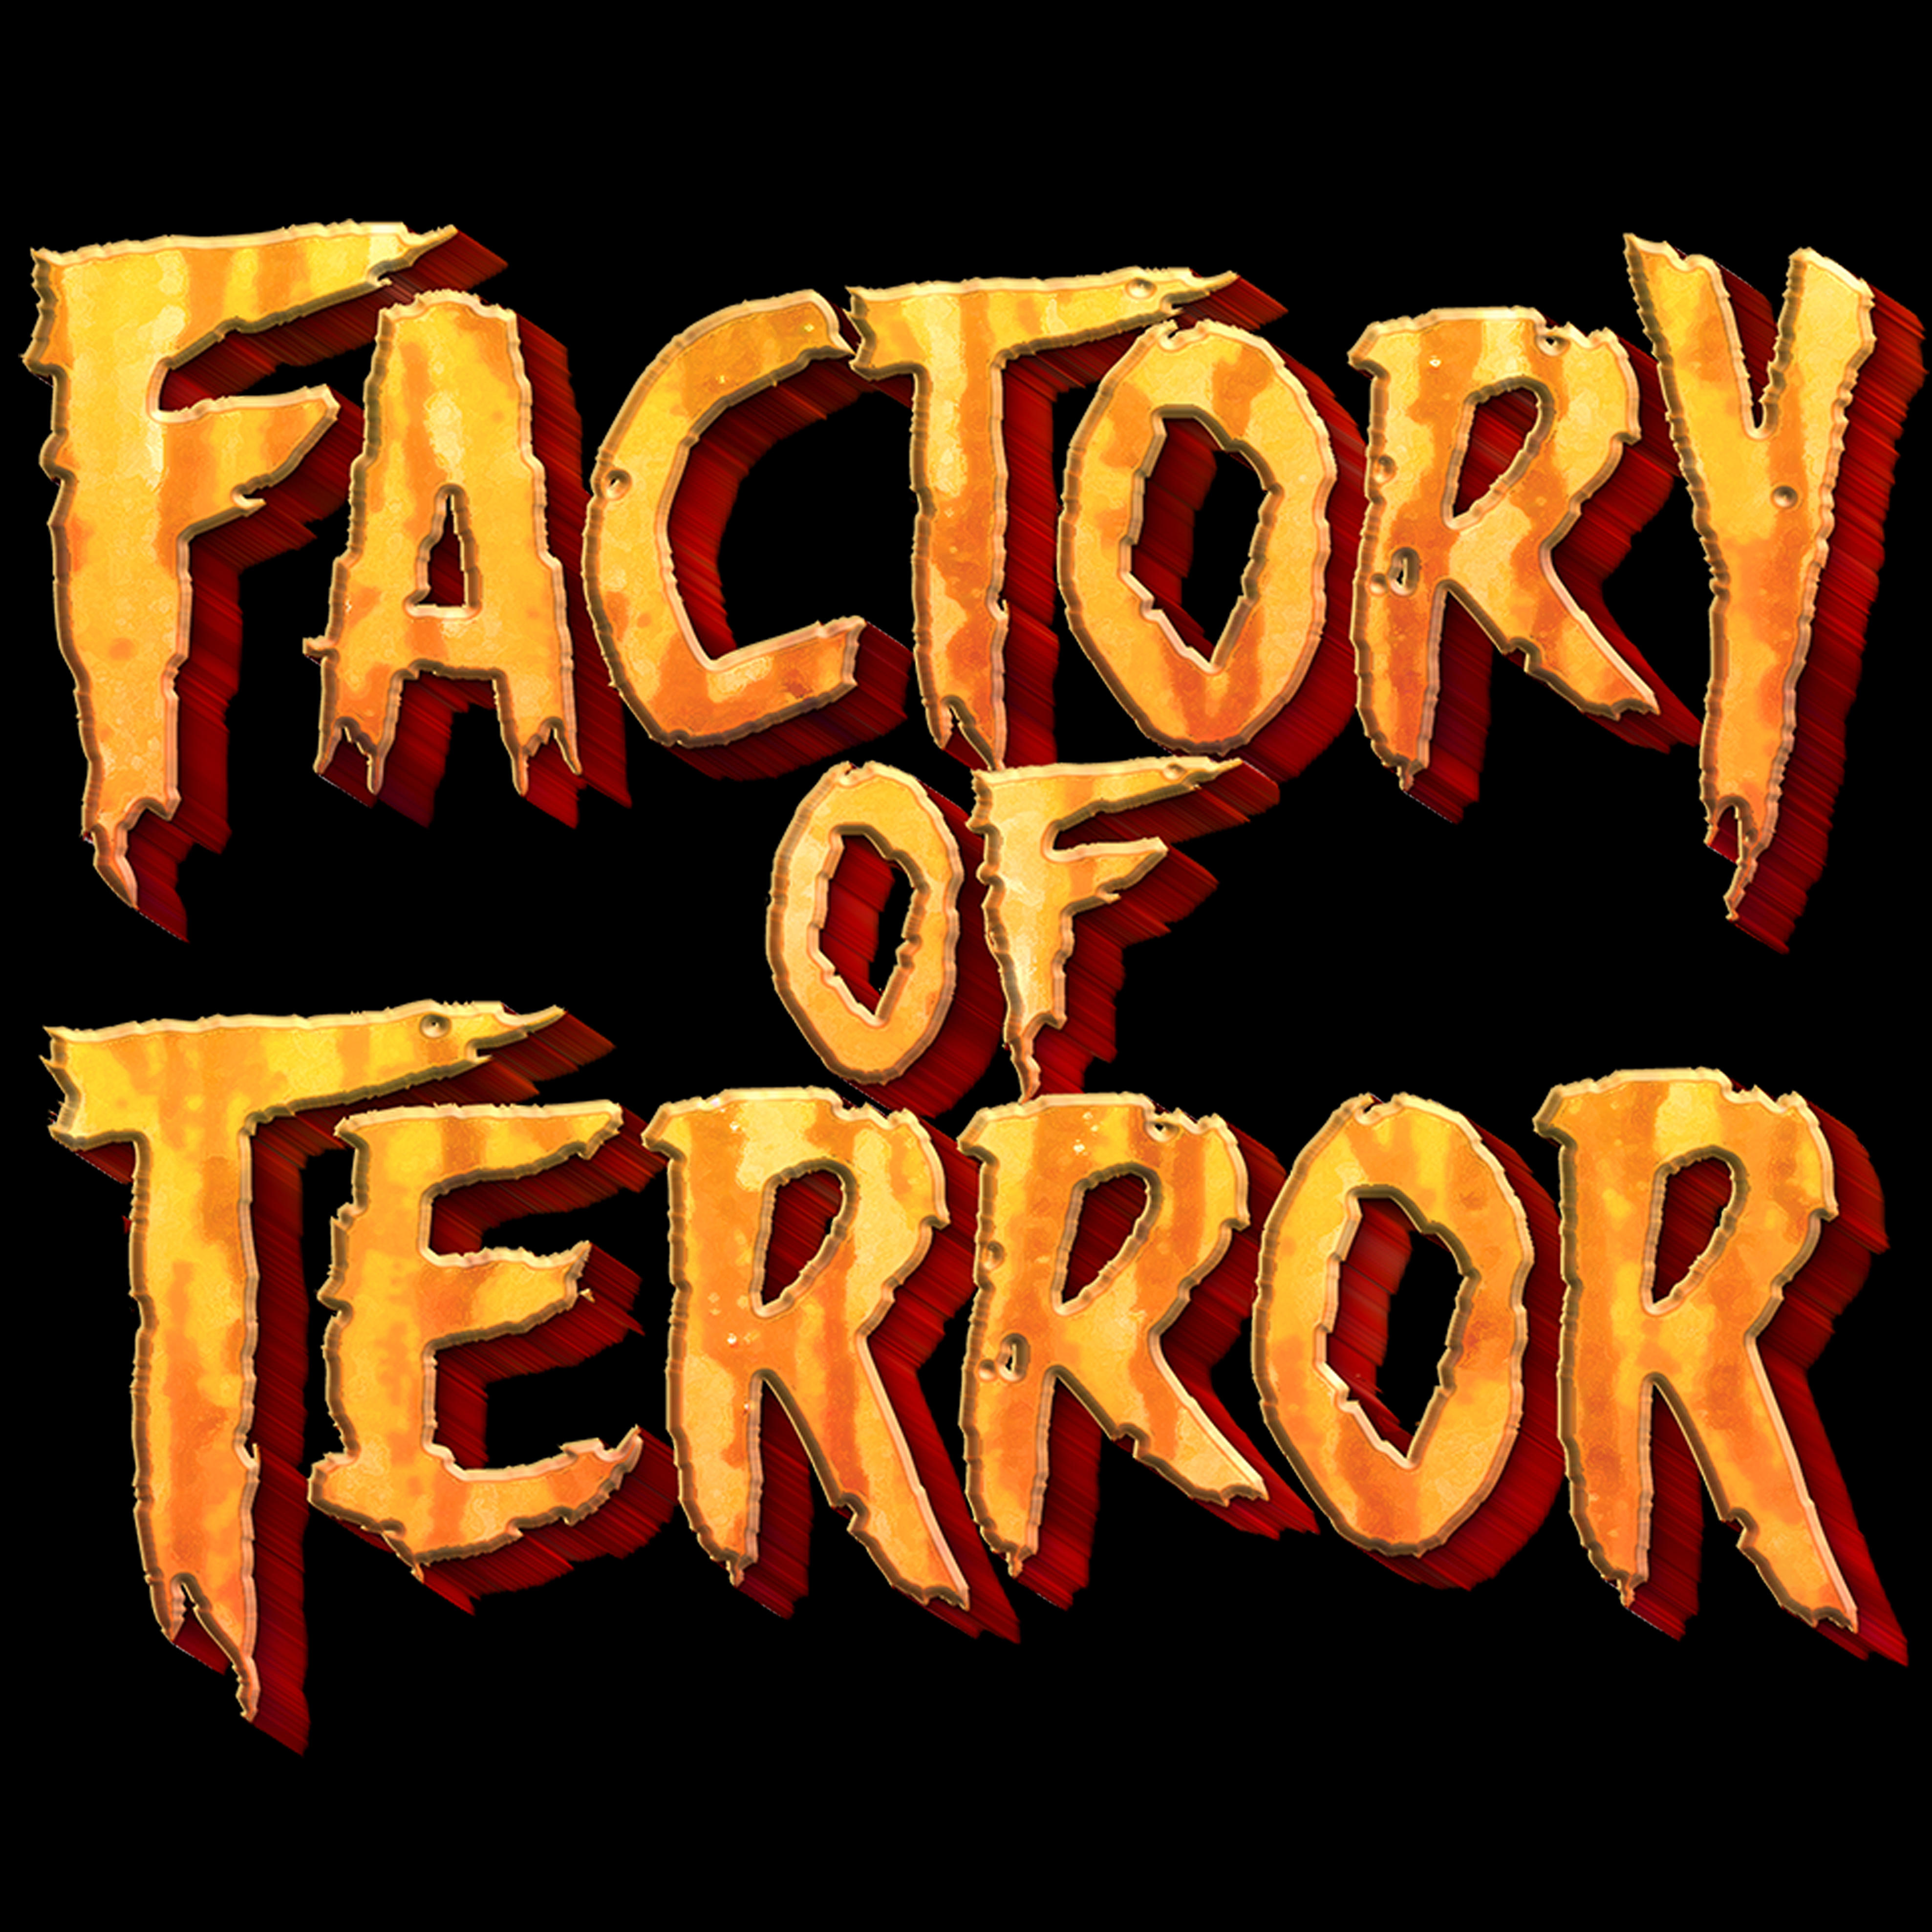 FACTORY OF TERROR HAUNTED HOUSE